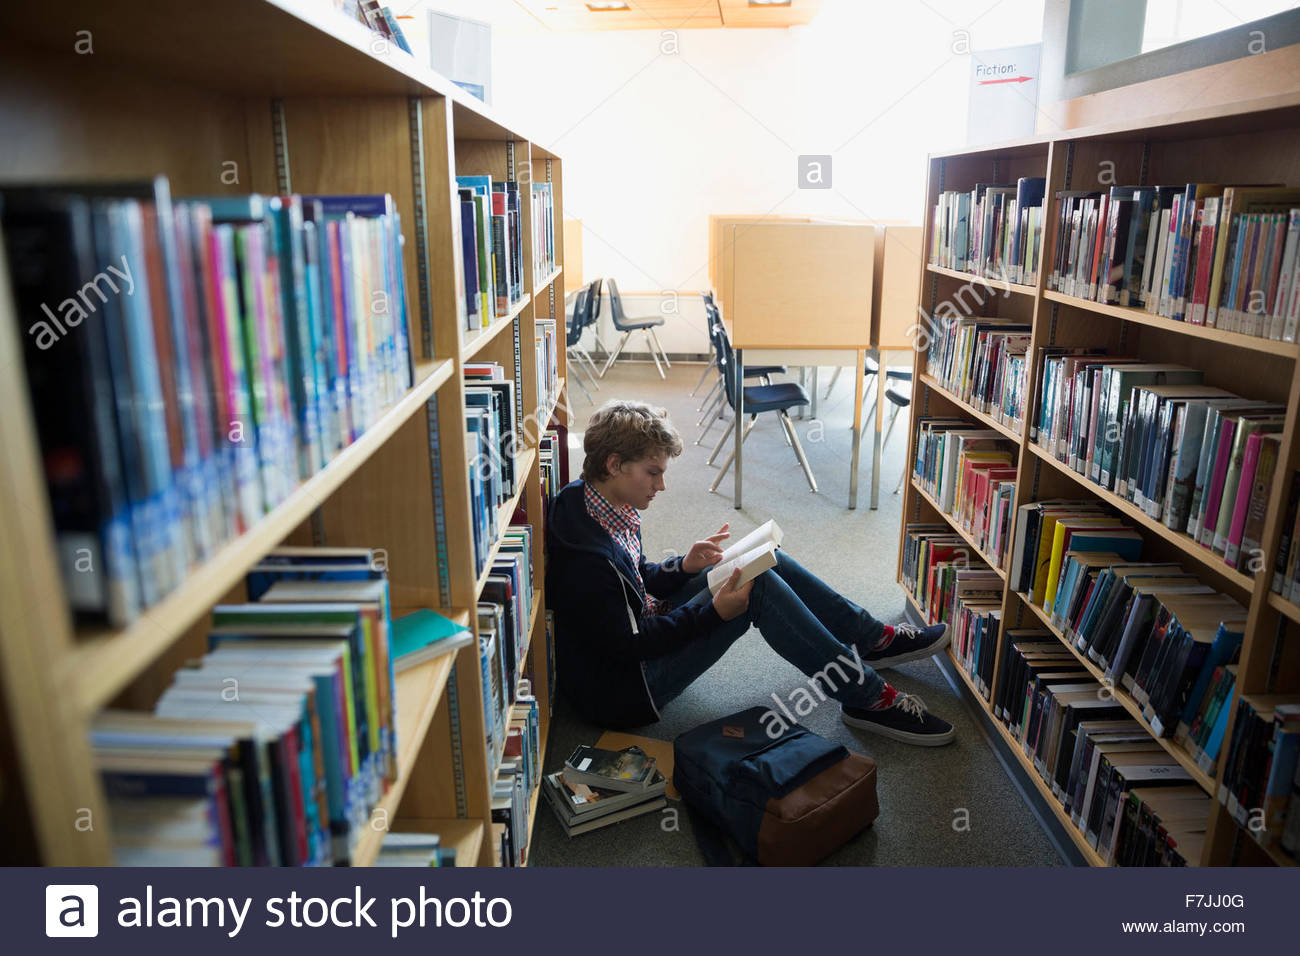 High school student reading book on library floor Photo Stock